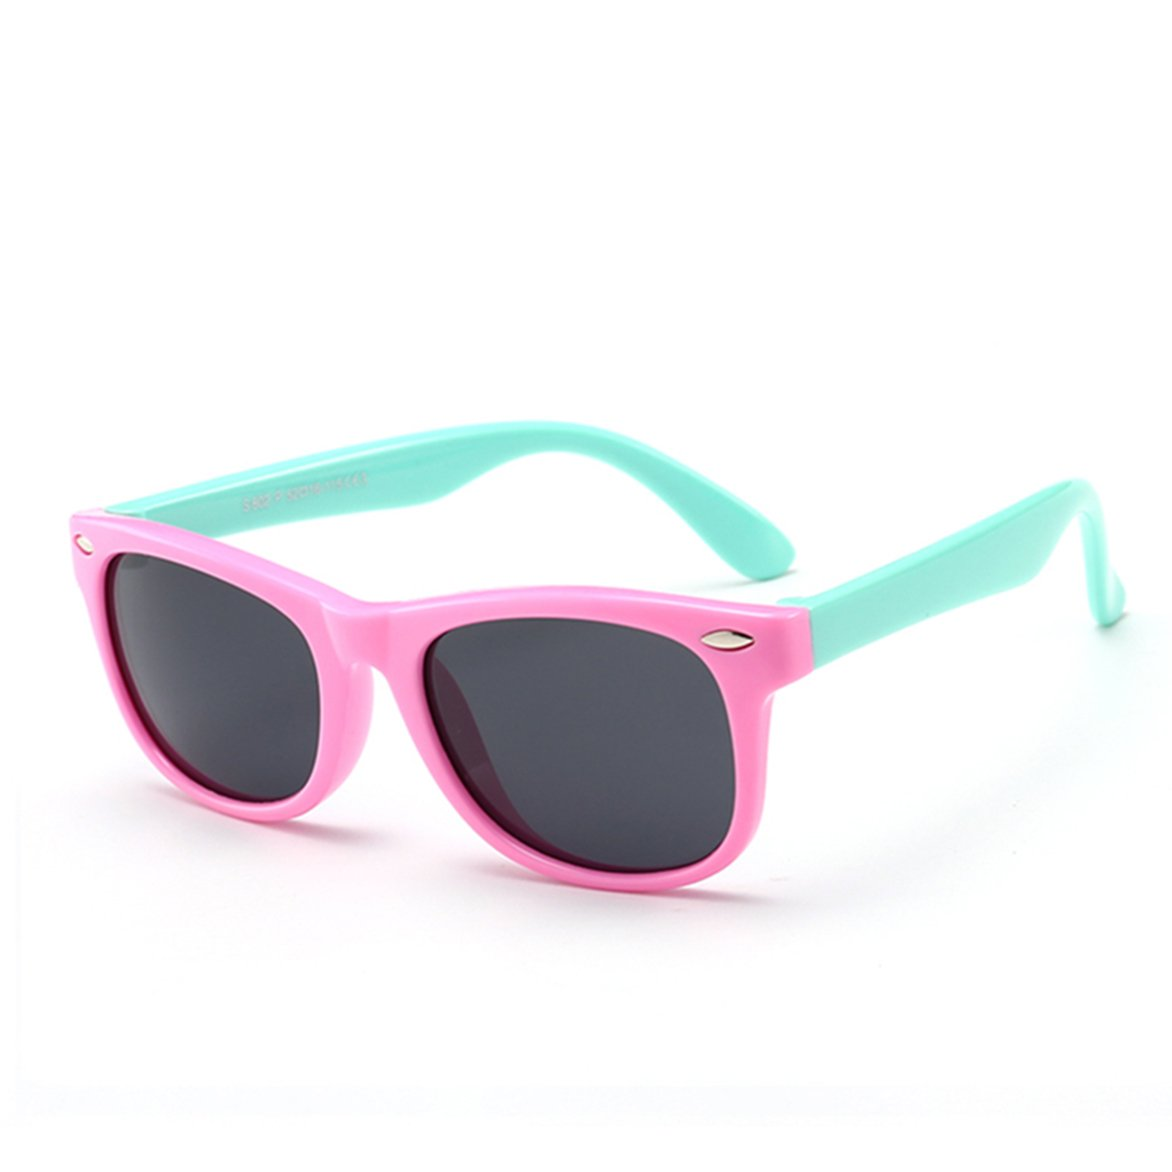 Juslink Toddler Sunglasses, 100% UV Proof Baby Sunglasses for Kids (Pink)